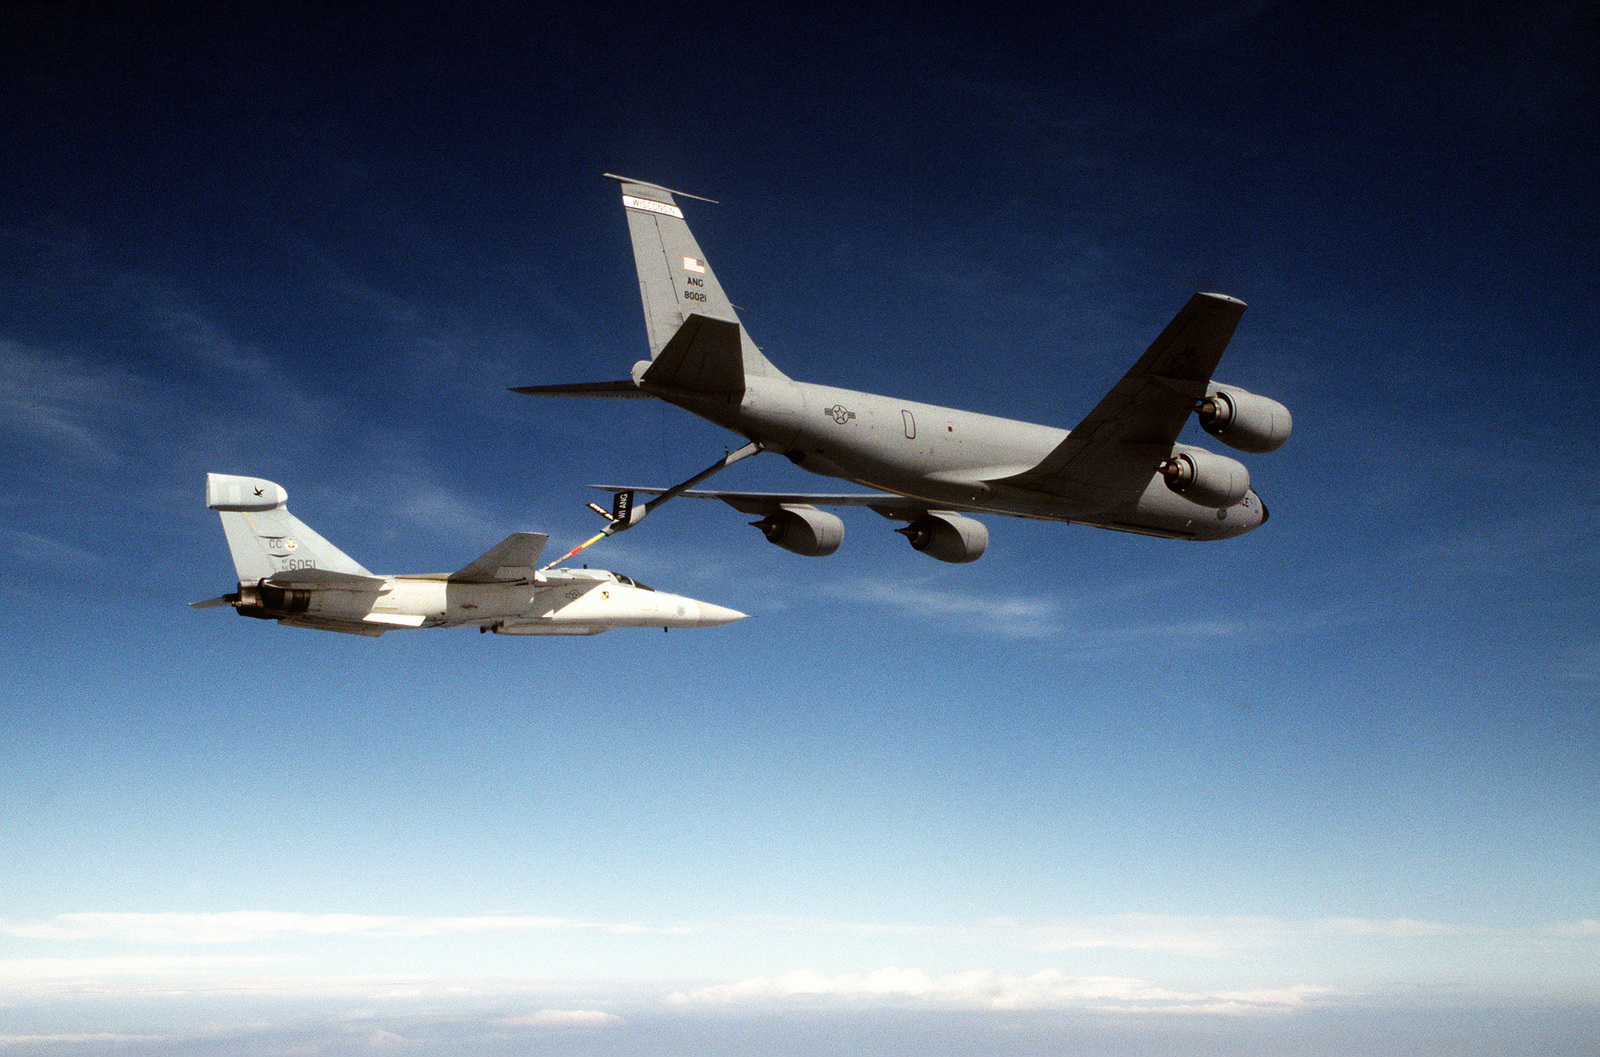 A U.S. Air Force EF-111 Raven is refueled by a KC-135 Stratotanker. The EF-111 Raven is designed to provide electronic countermeasures support for tactical air forces and will detect, sort, identify and nullify different enemy radar. The Raven is deployed in Aviano Air Base, Italy, from the 429th Electronic Combat Squadron, Cannon Air Force Base, New Mexico and is in support of the operation to enforce the no fly zone over Bosnia. Exact Date Shot Unknown